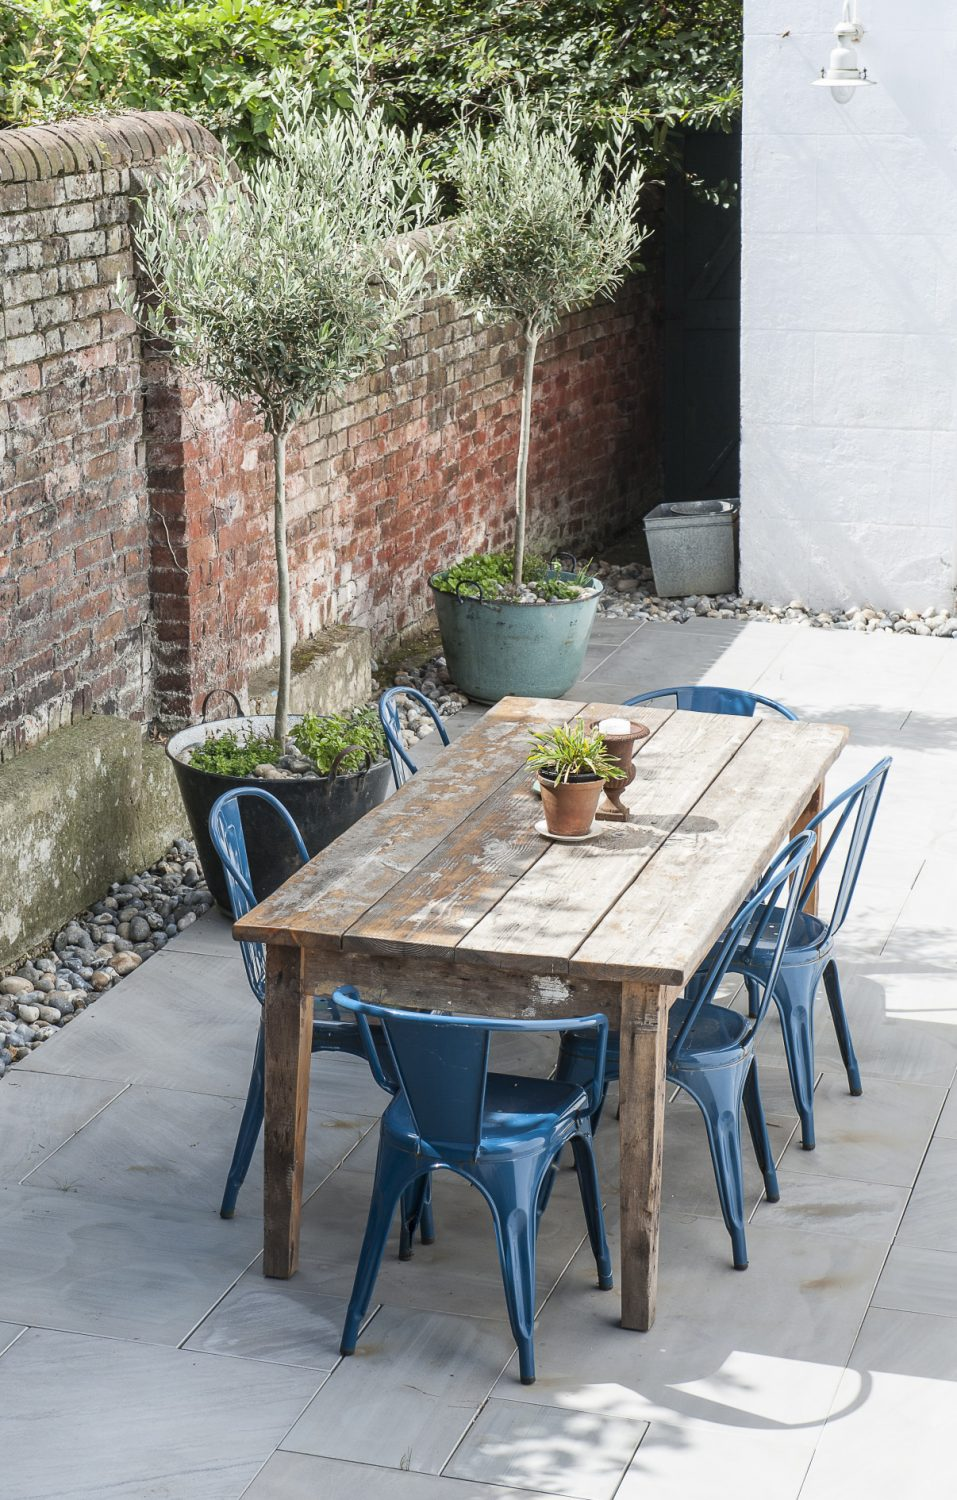 Annette has created a lovely entertaining space in the garden